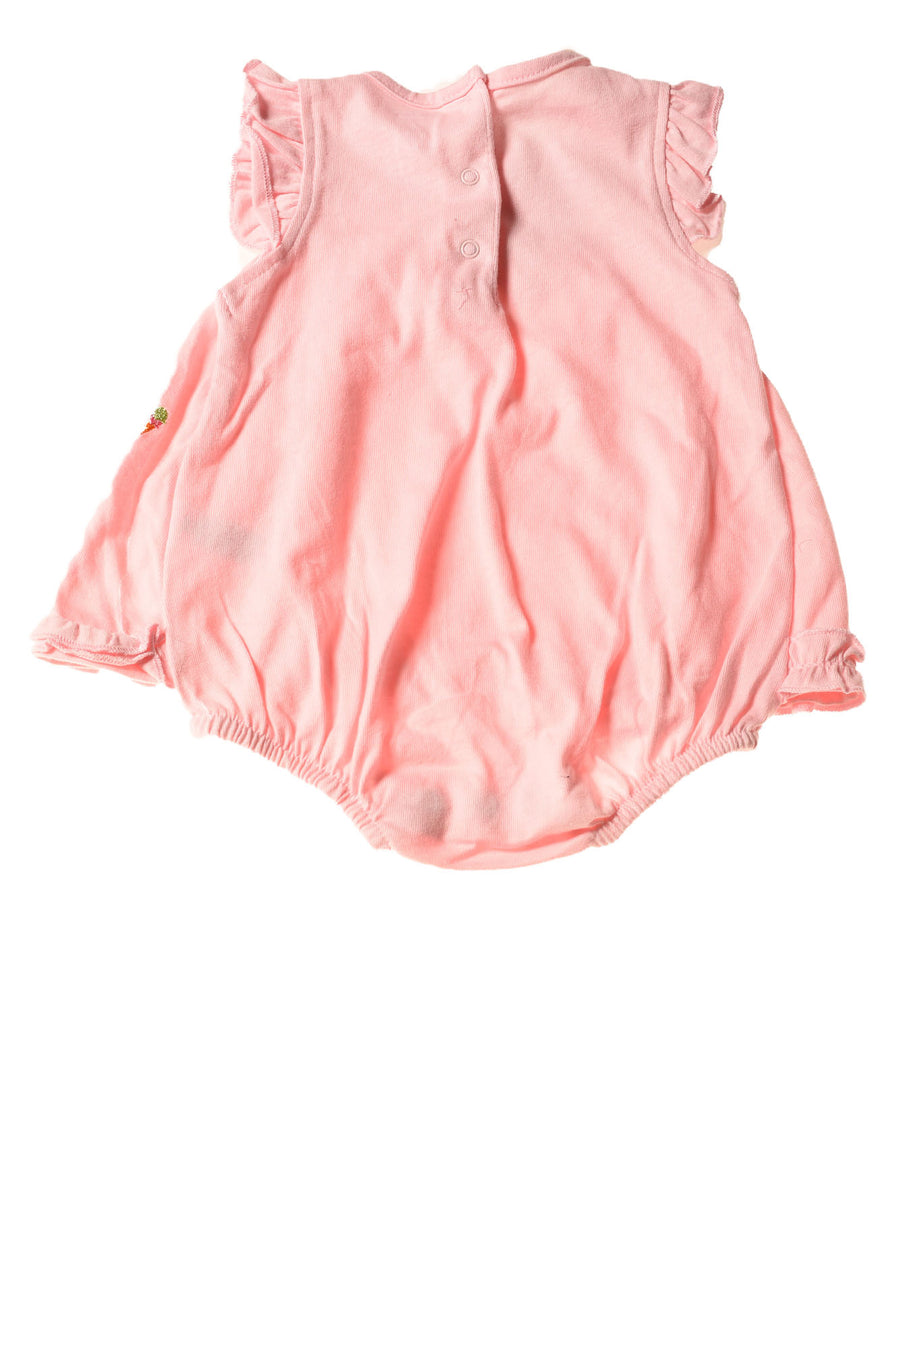 Baby Girl's Romper By Carter's